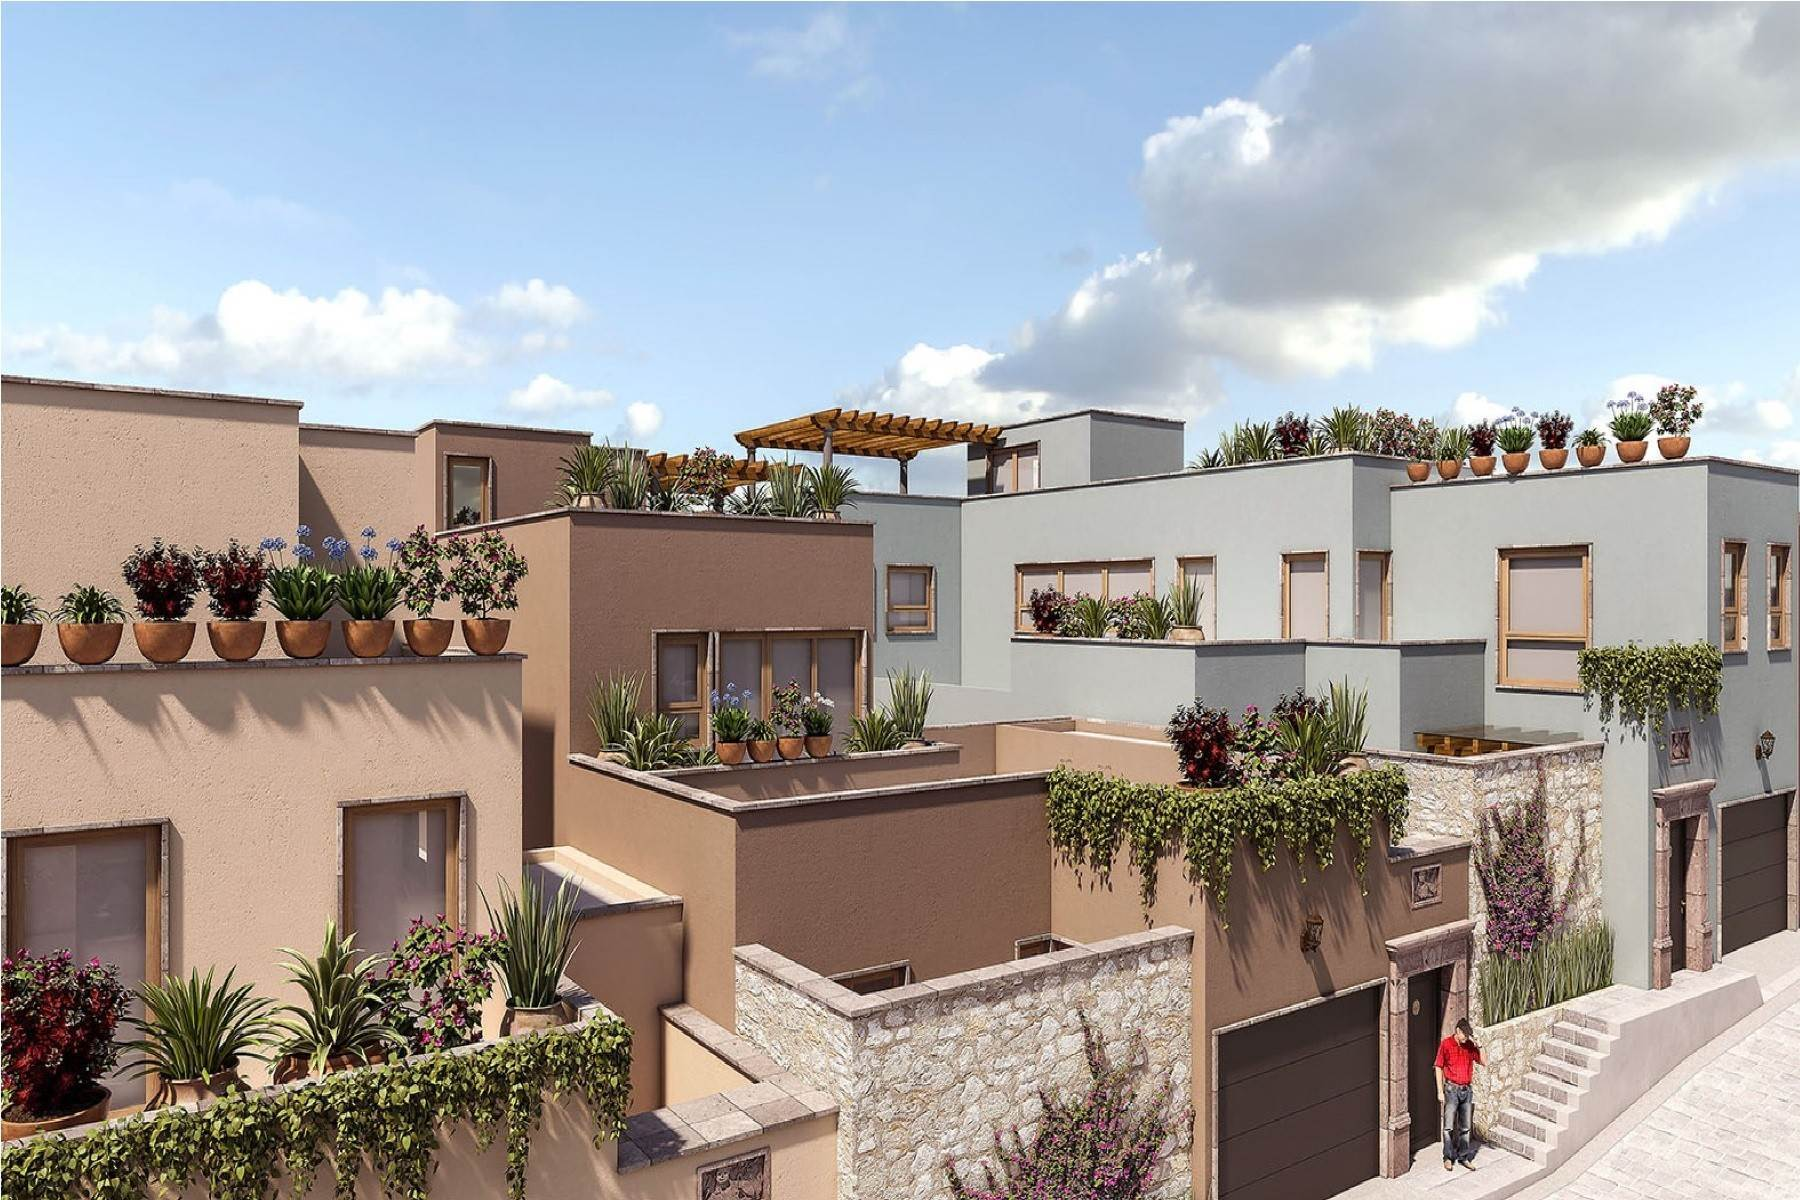 3. Single Family Homes for Sale at Quiote I Cerrada de Grillo San Miguel De Allende, Guanajuato 37770 Mexico